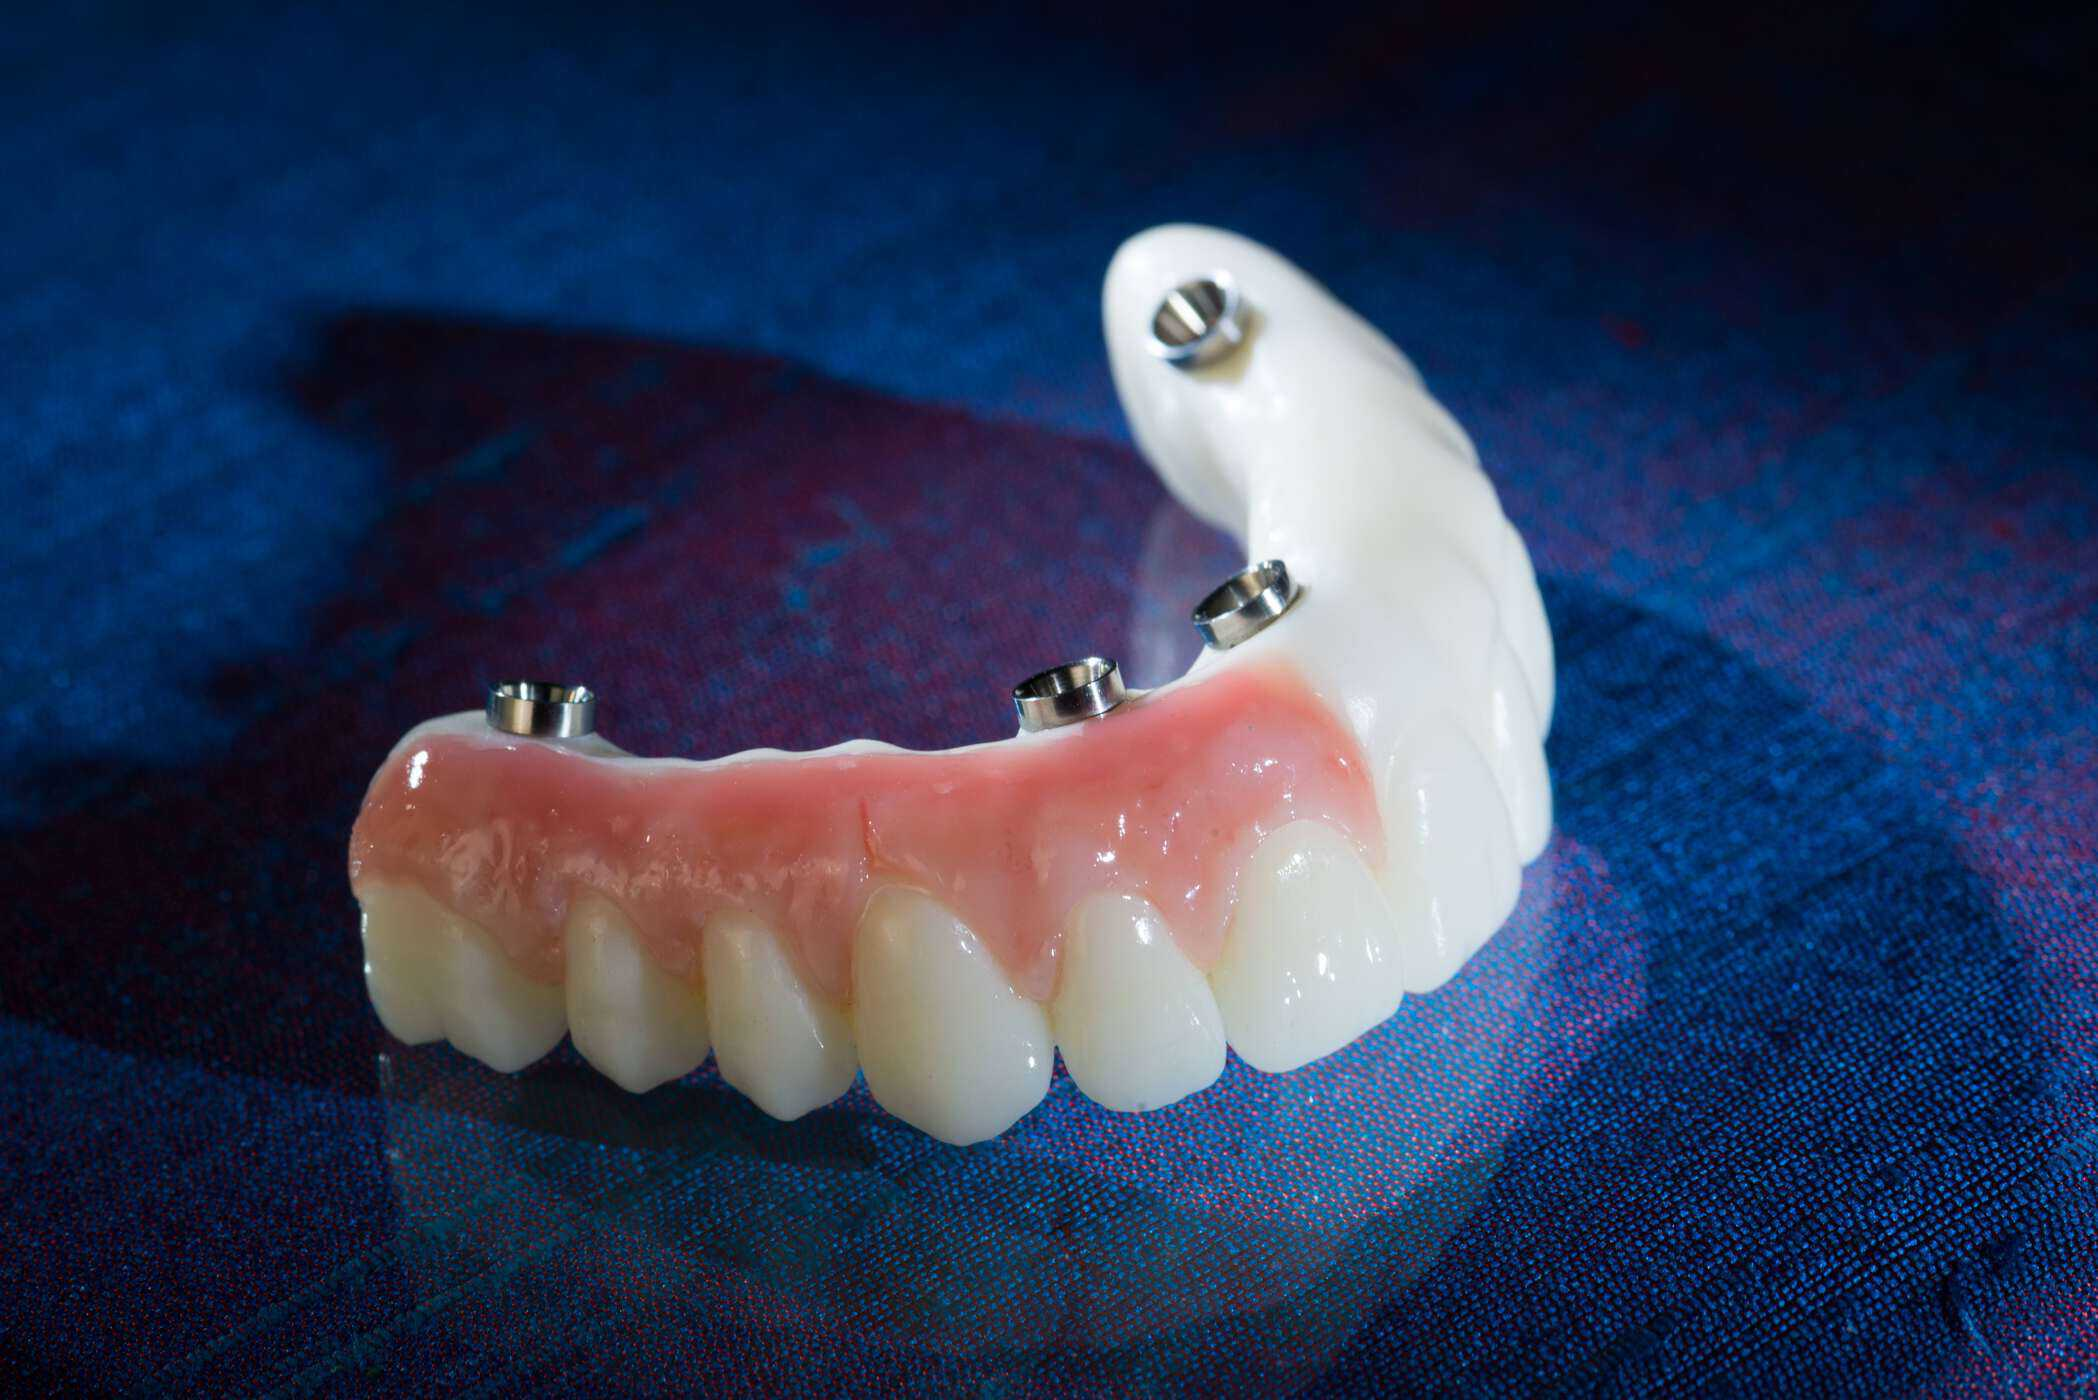 DuraTemps PMMA provisionals produced by Burbank Dental Lab